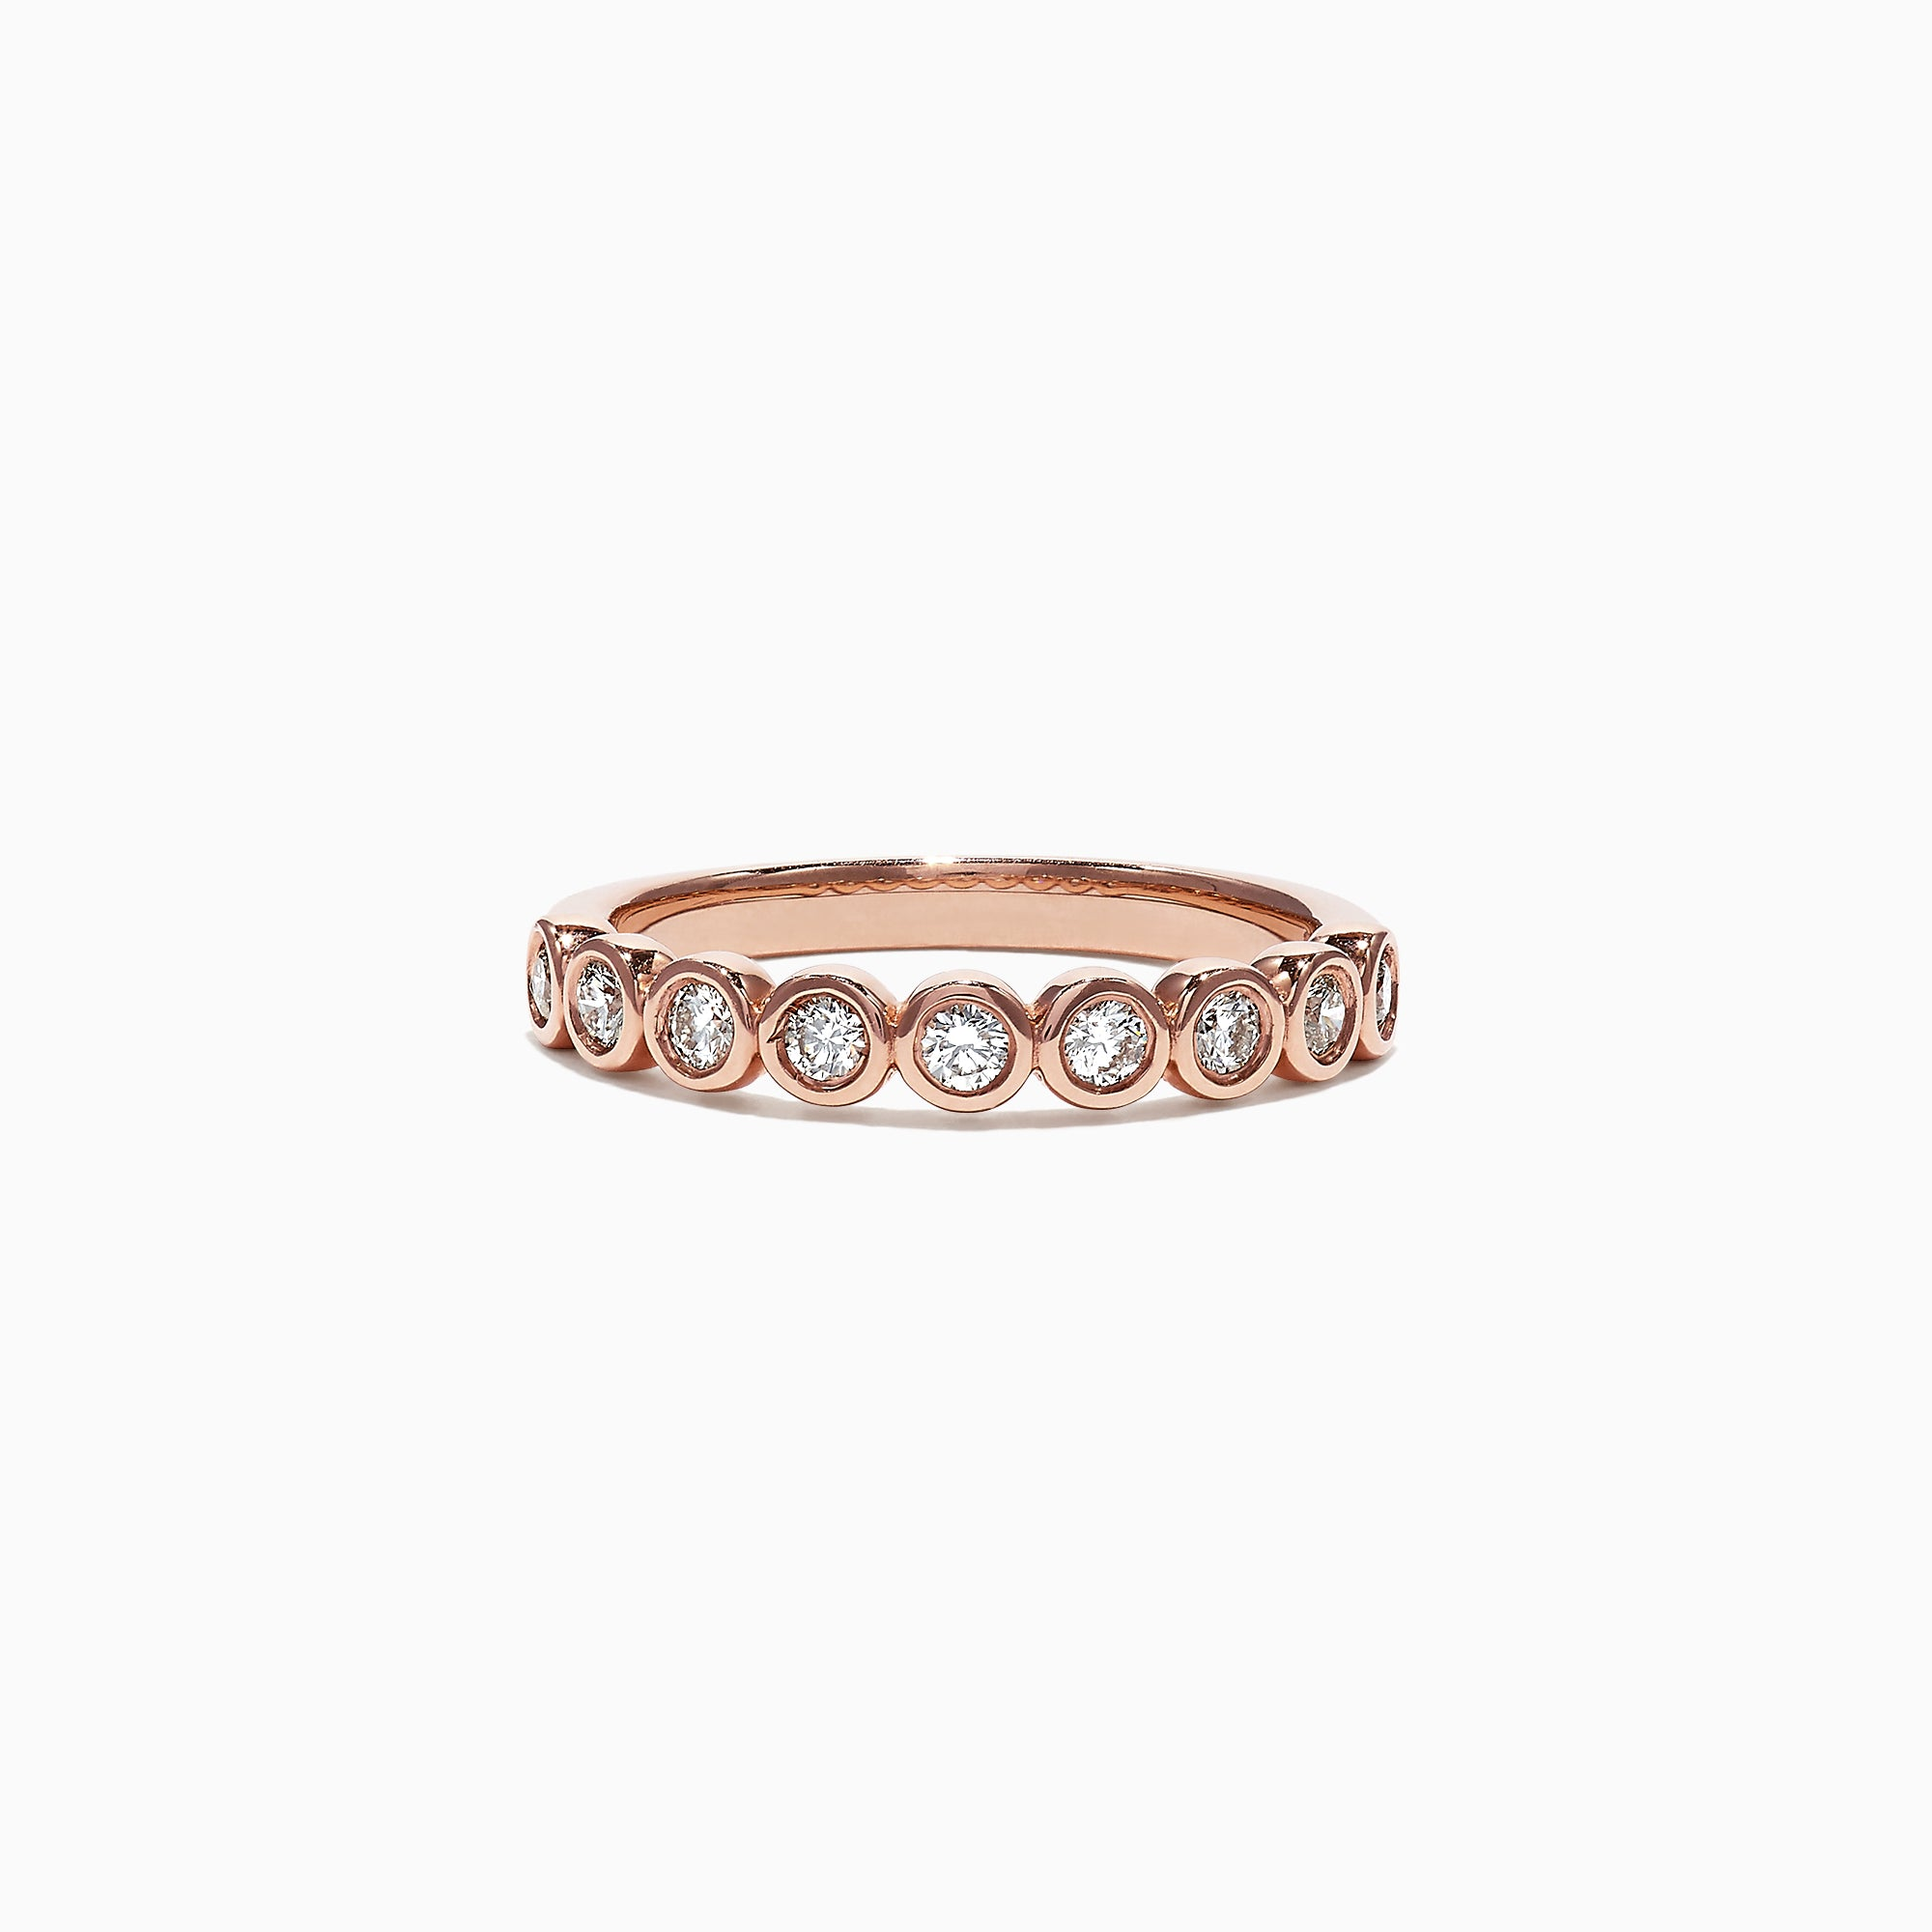 Effy Pave Classica 14K Rose Gold Diamond Bezel Set Ring, 0.35 TCW